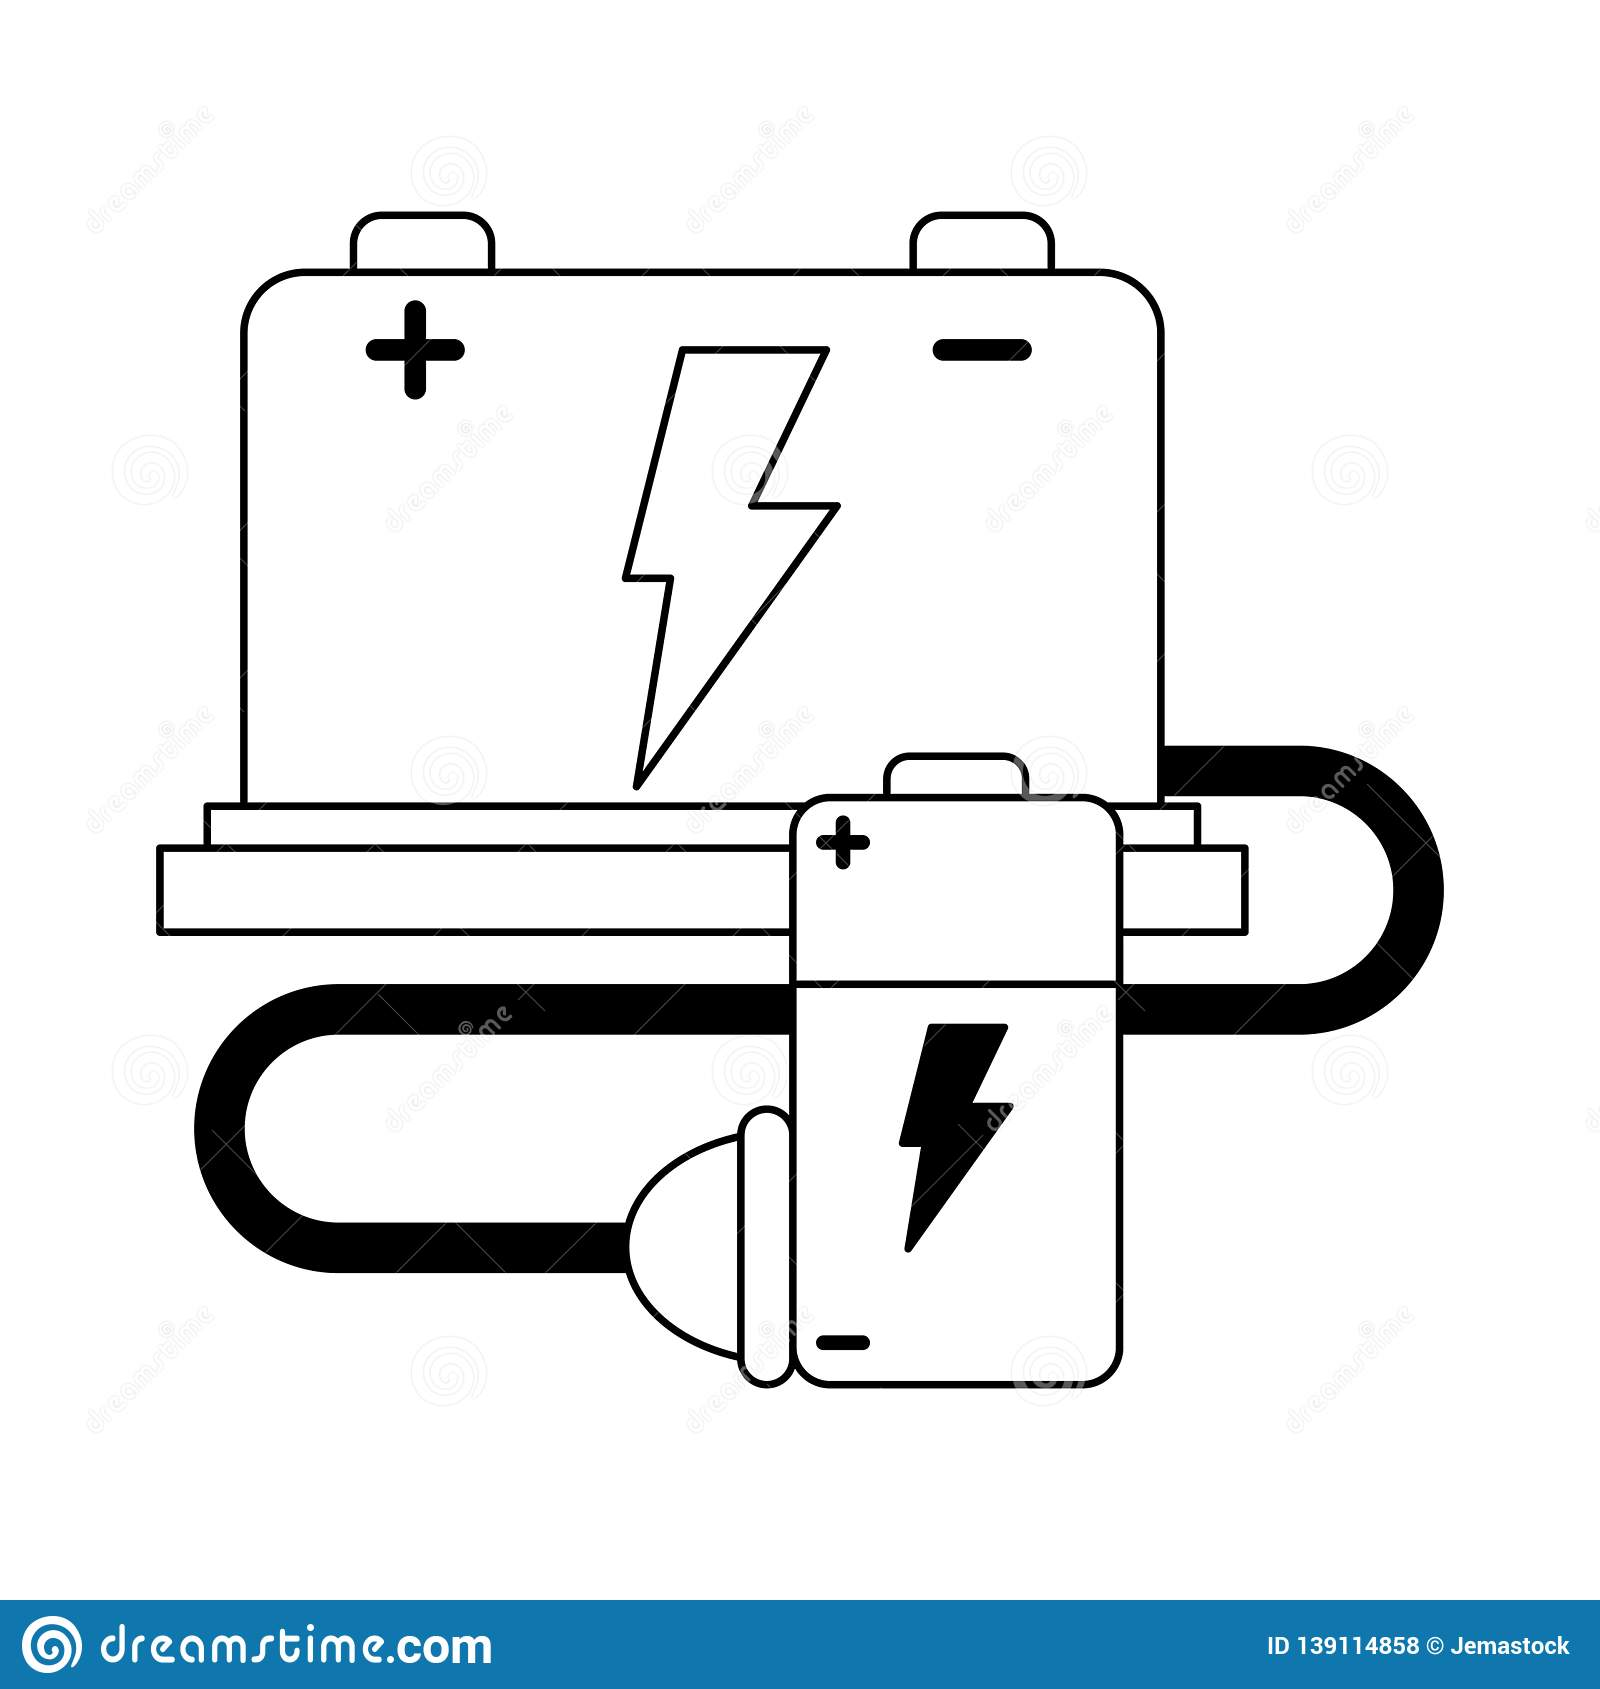 hight resolution of car battery and wire with plug black and white stock vector stock car battery wiring diagram